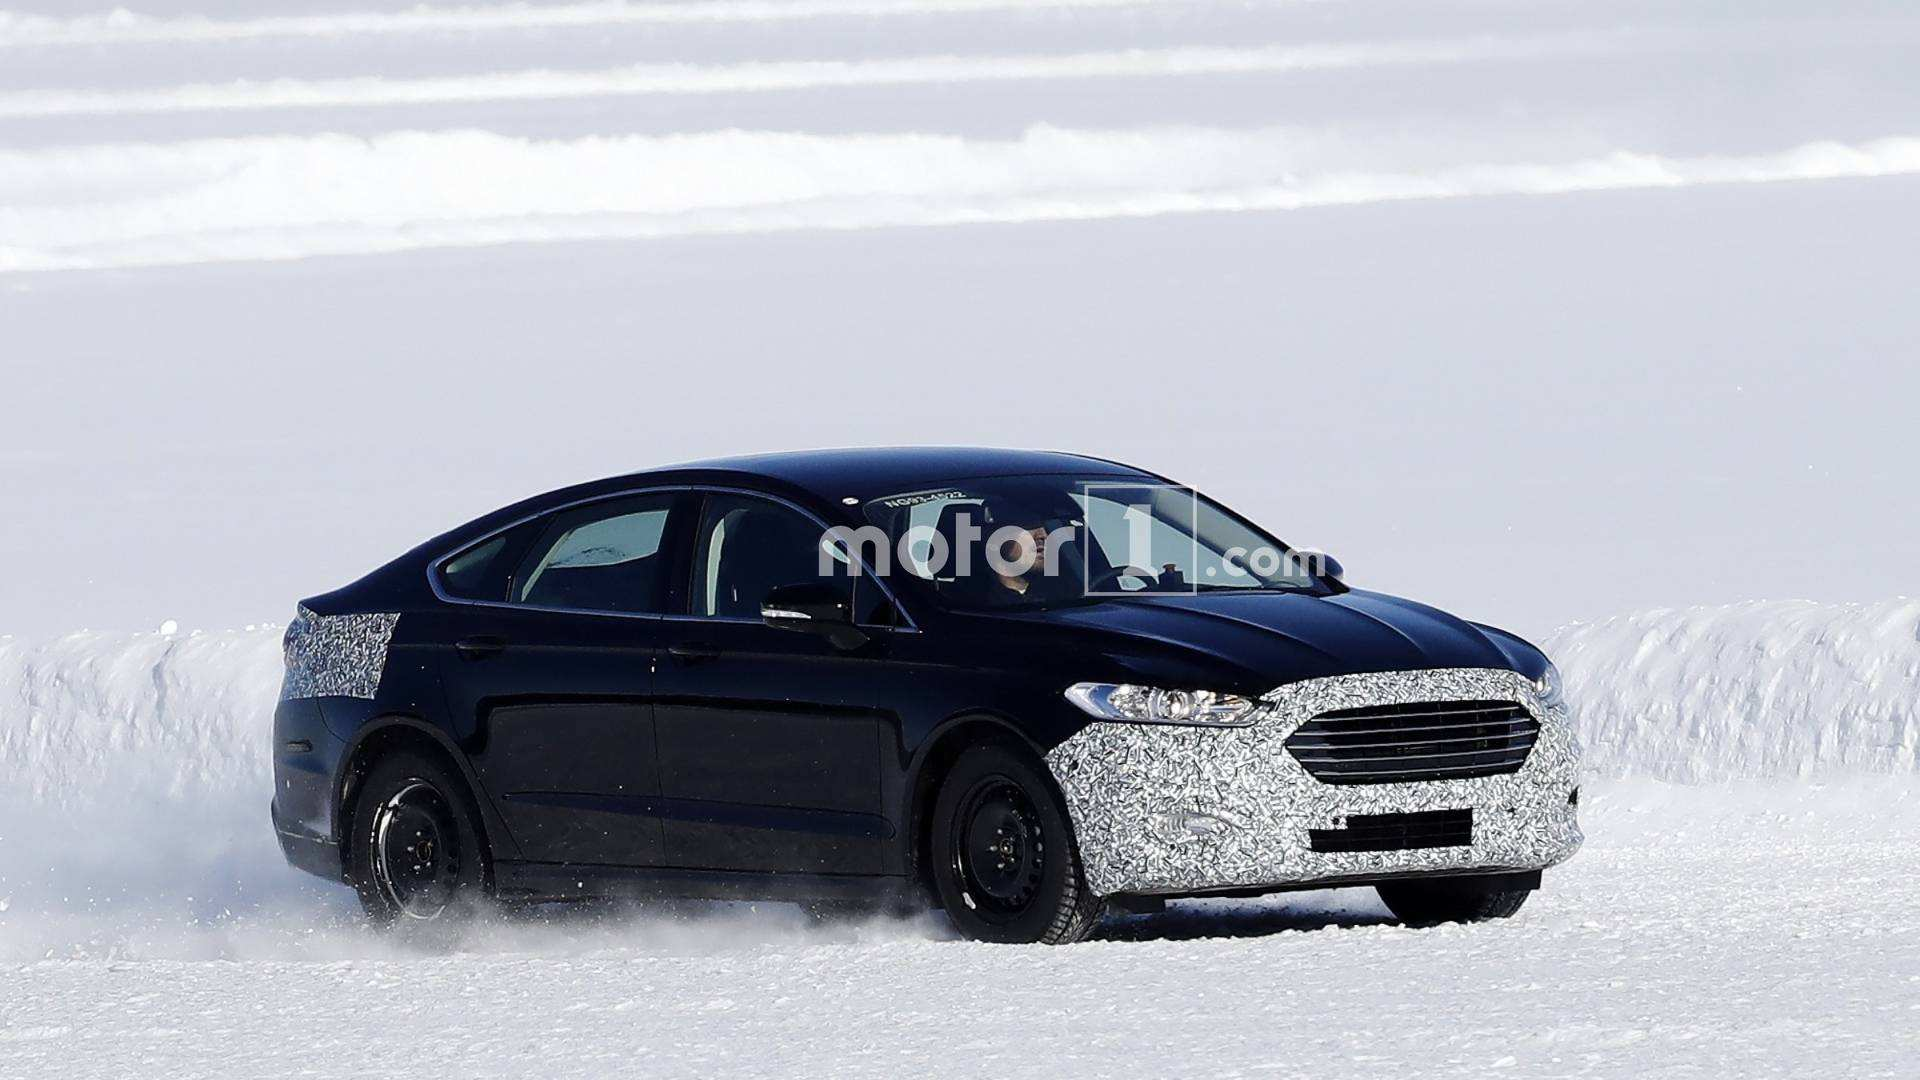 19 New Ford Neuheiten 2020 Price Design And Review